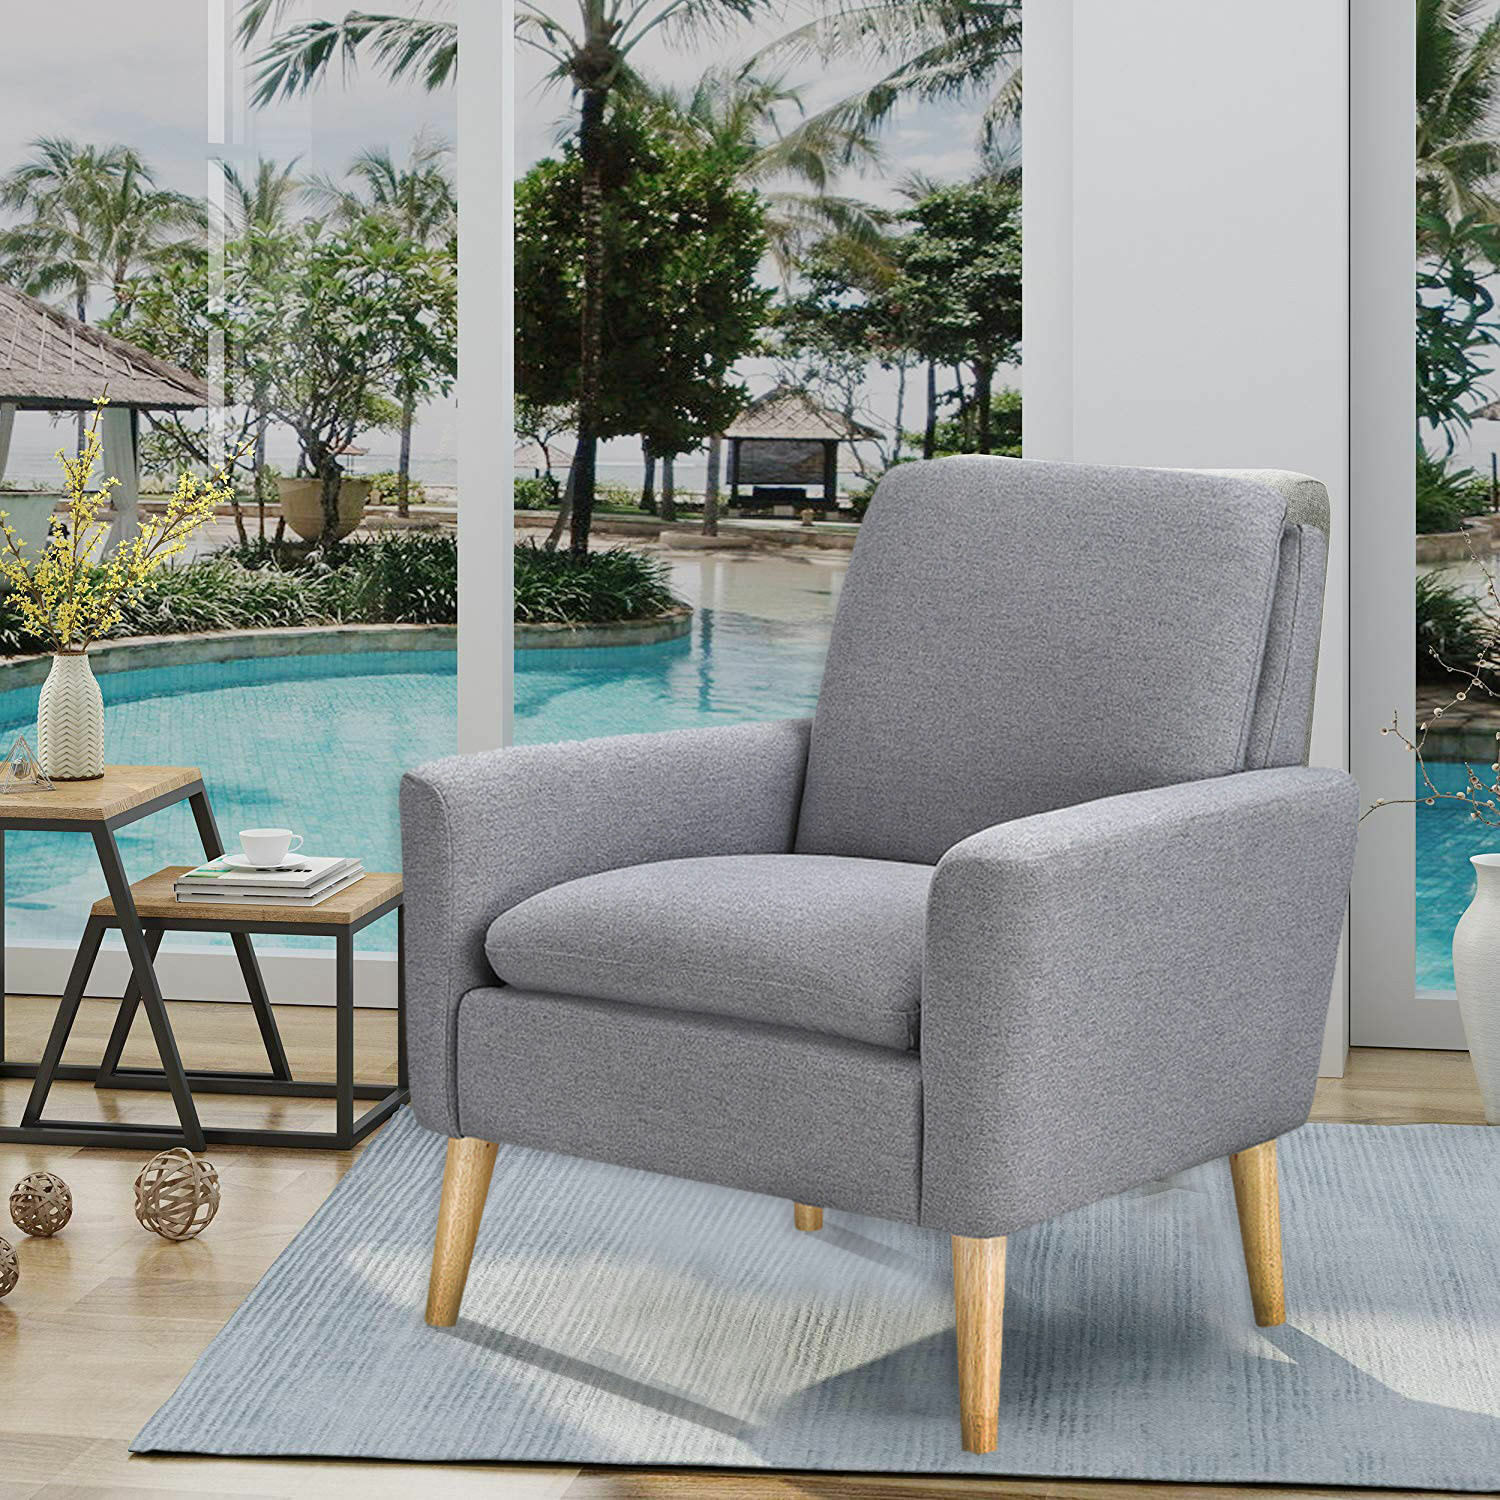 Fabulous Details About Arm Chair Tufted Back Fabric Upholstered Accent Chair Single Sofa Wood Leg Gray Andrewgaddart Wooden Chair Designs For Living Room Andrewgaddartcom